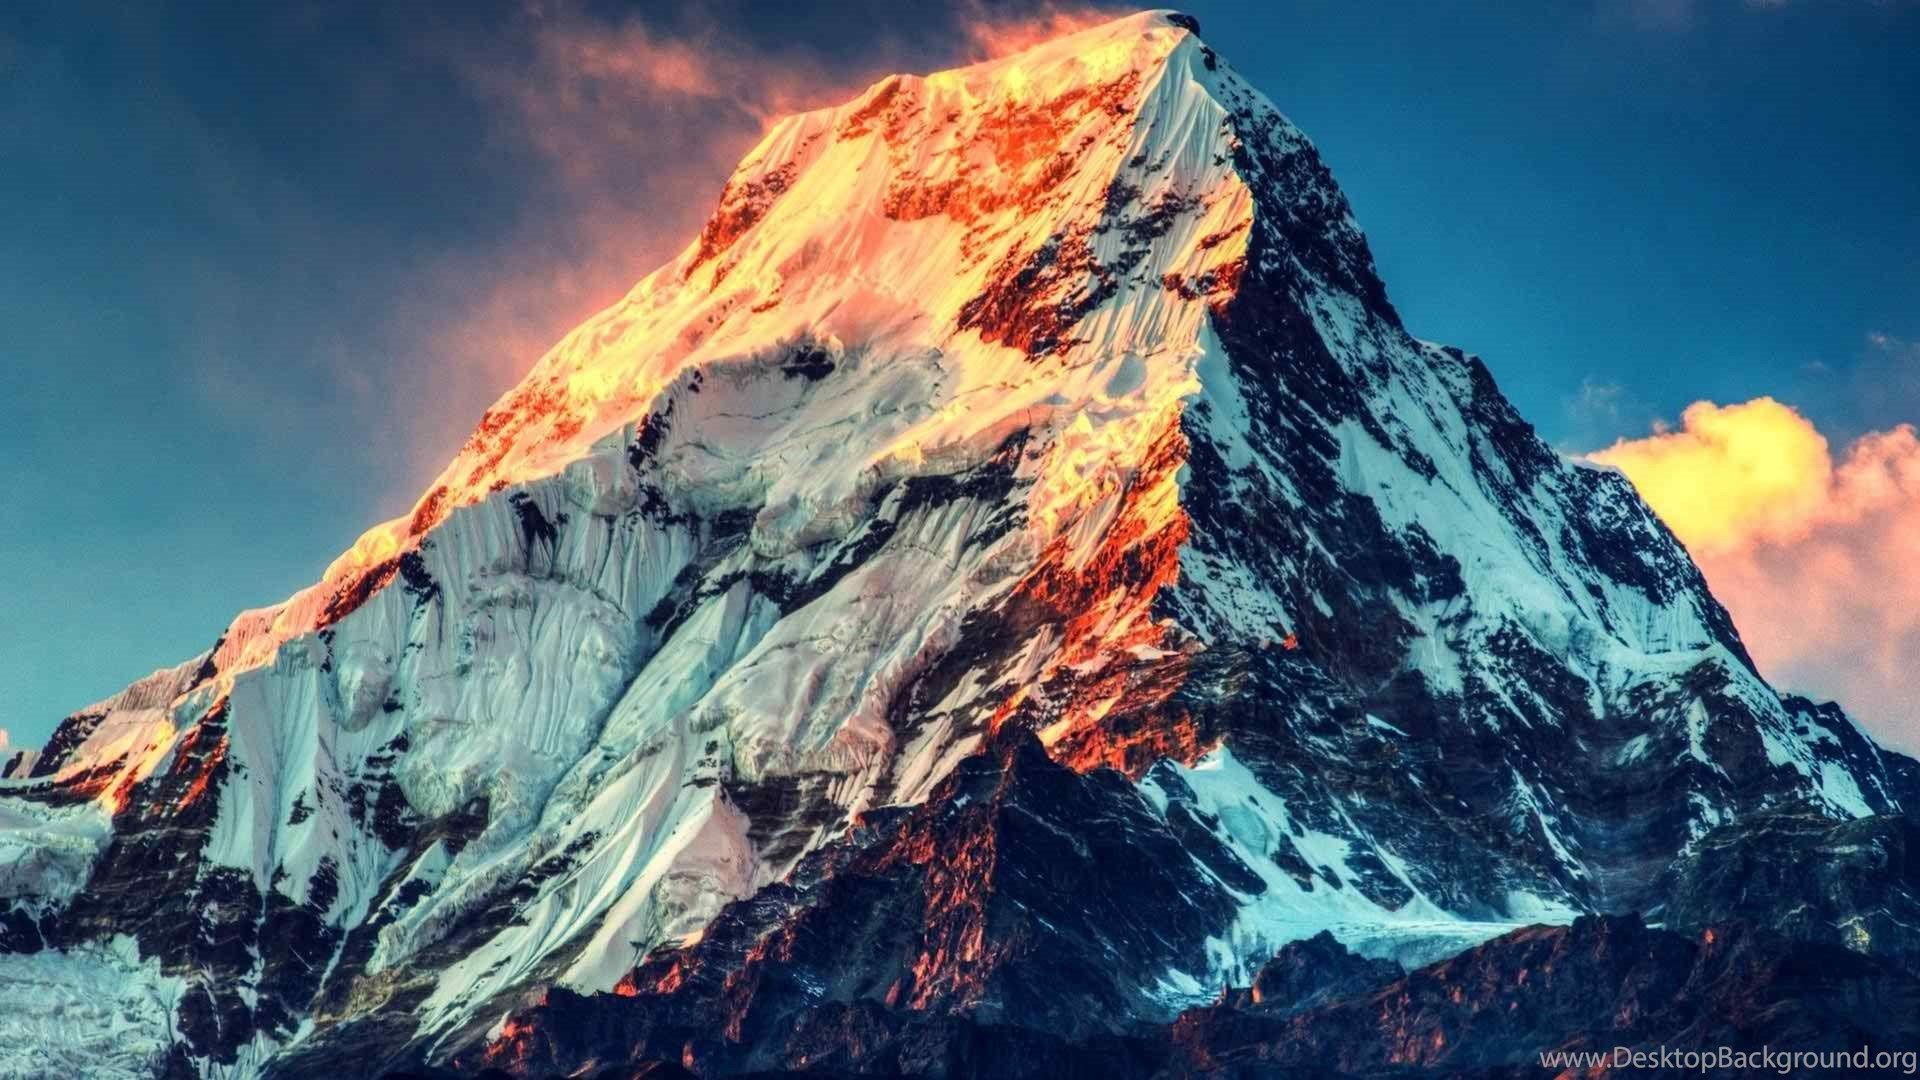 K2 Mountain Wallpaper Desktop ✓ The Galleries of HD Wallpaper